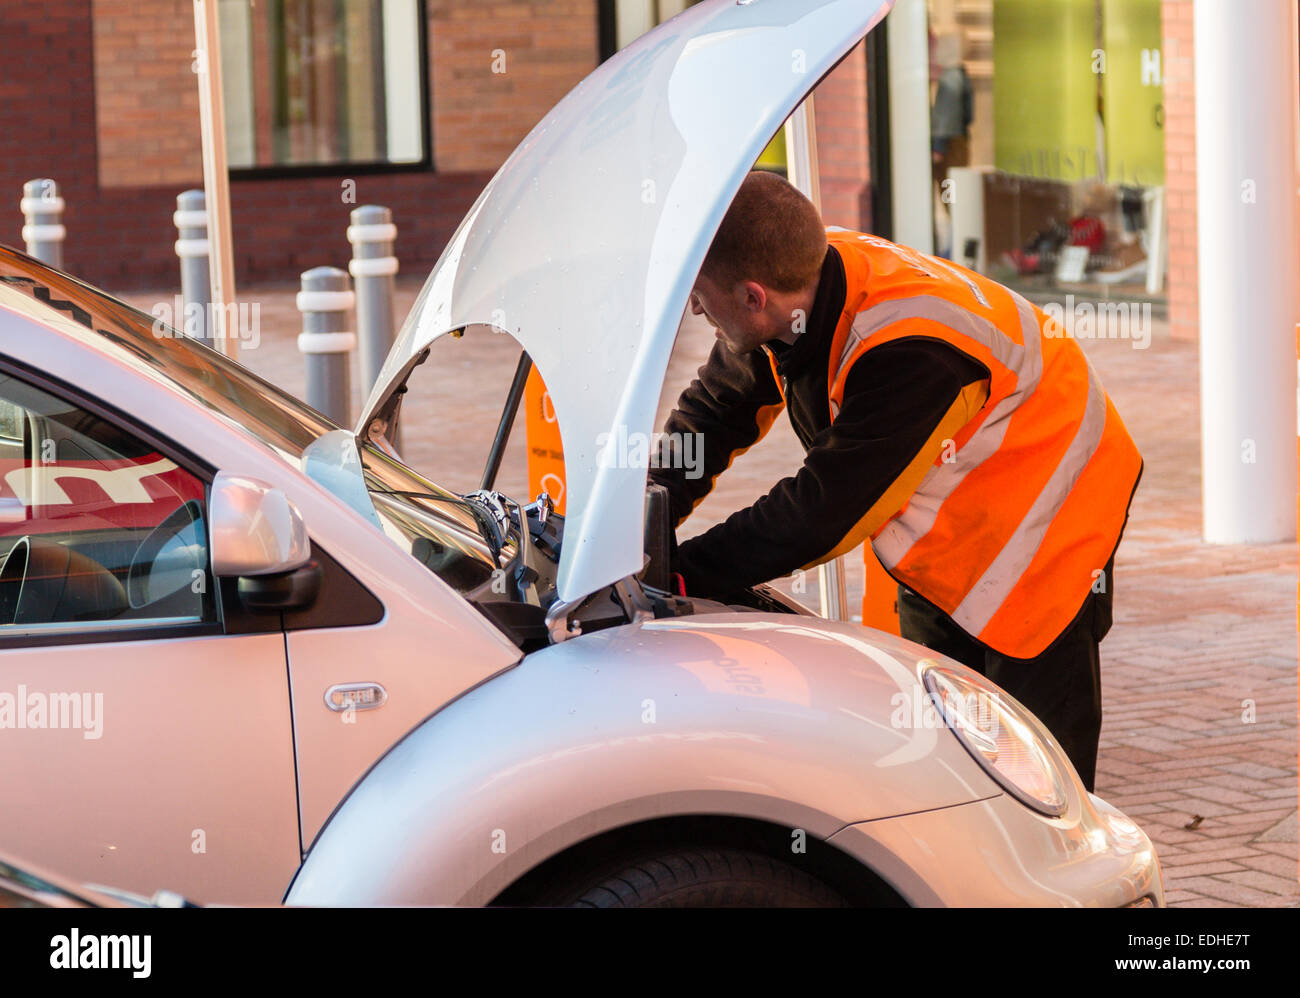 Male mechanic working on a car with the bonnet (hood) up.  He is wearing an orange hi-viz jacket.  Inconvenient - Stock Image